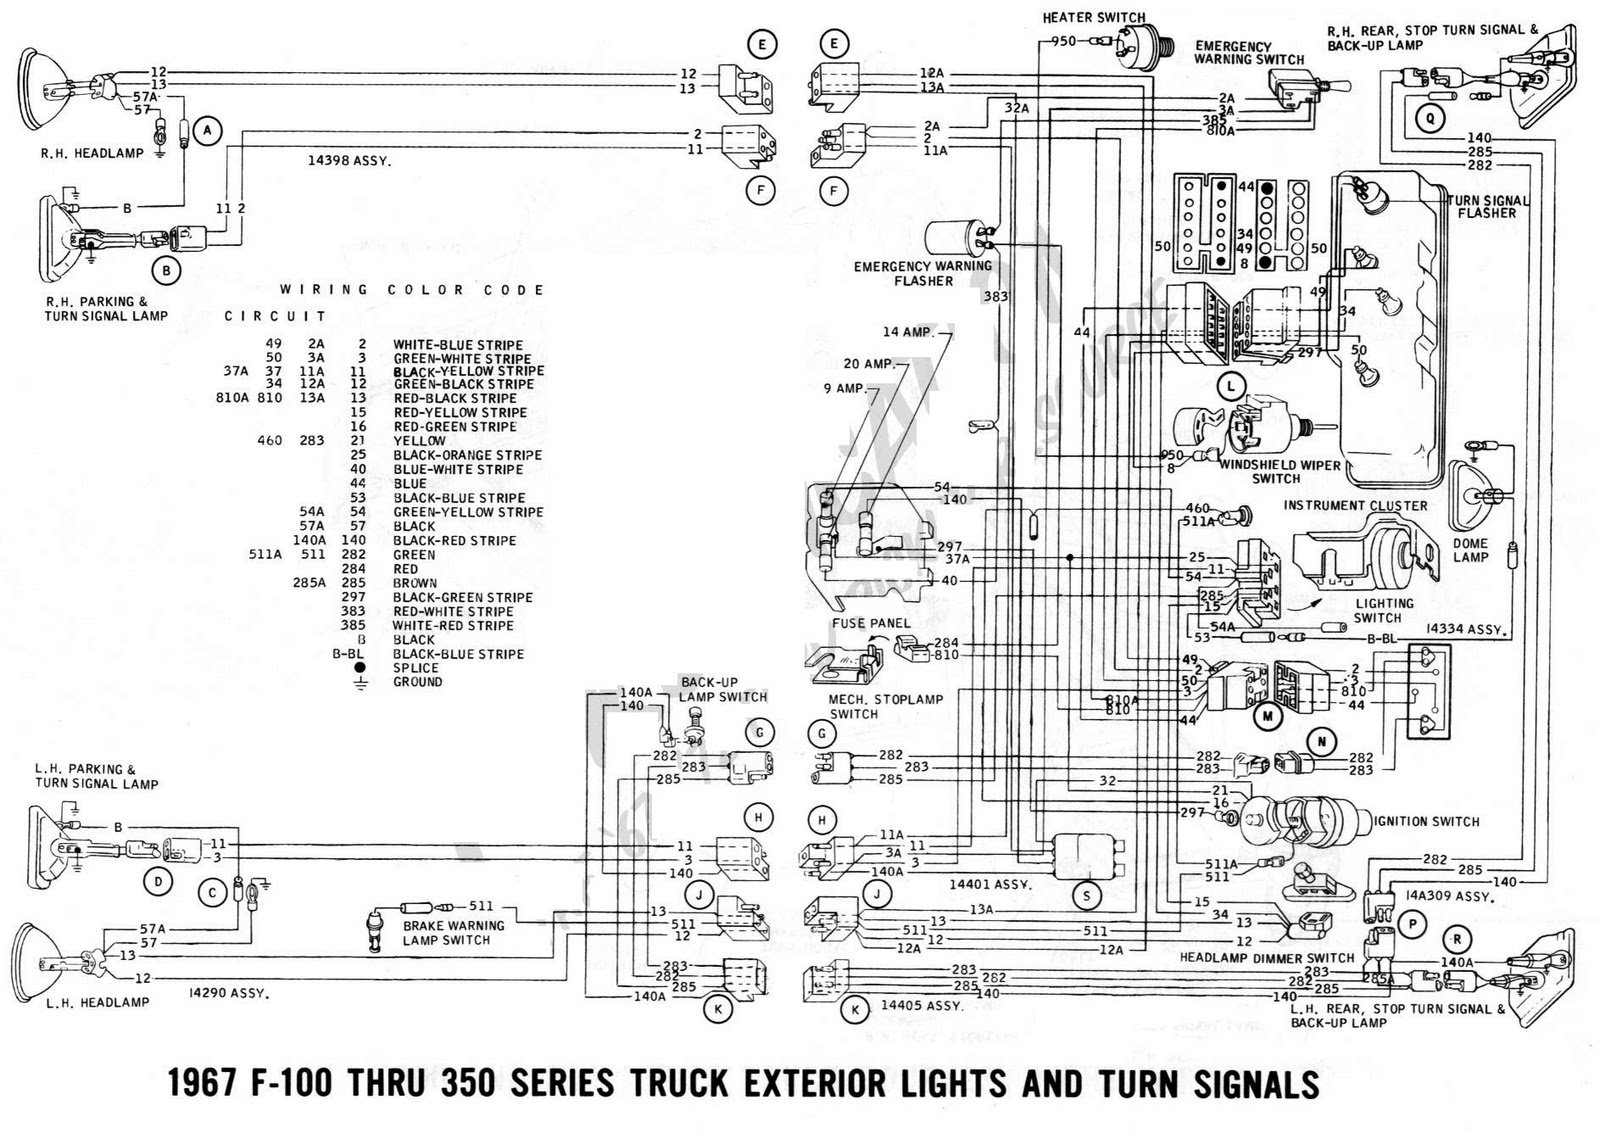 DIAGRAM] 1962 Ford F100 Turn Signal Wiring Diagram FULL Version HD Quality Wiring  Diagram - STRUCTUREDWIREENCLOSURE.RAPFRANCE.FRstructuredwireenclosure.rapfrance.fr